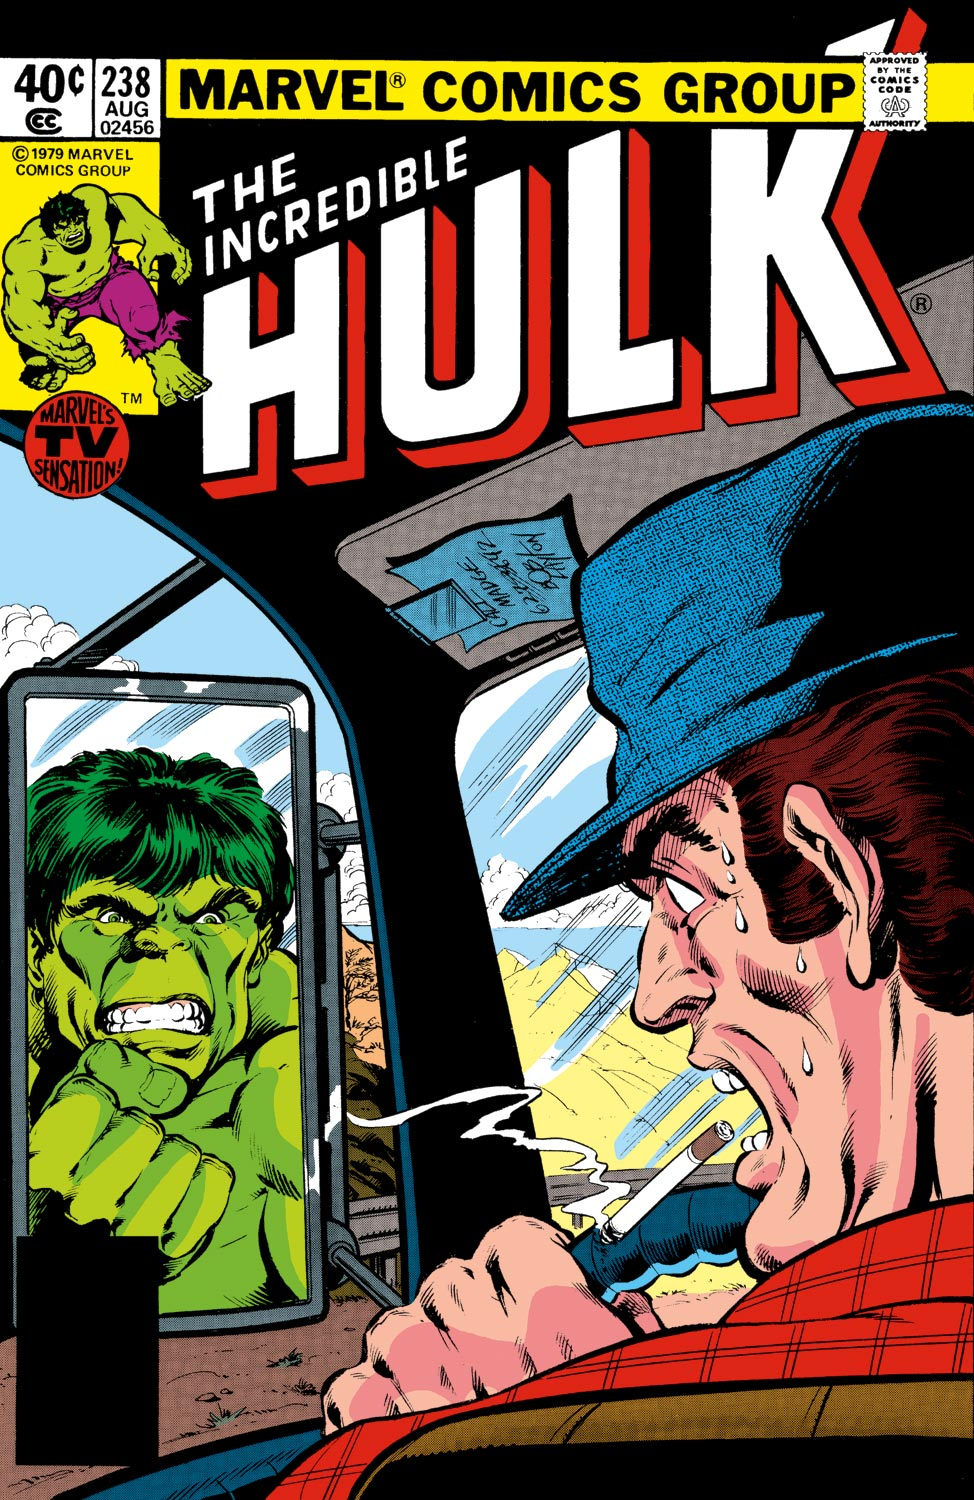 Incredible Hulk (1962) #238